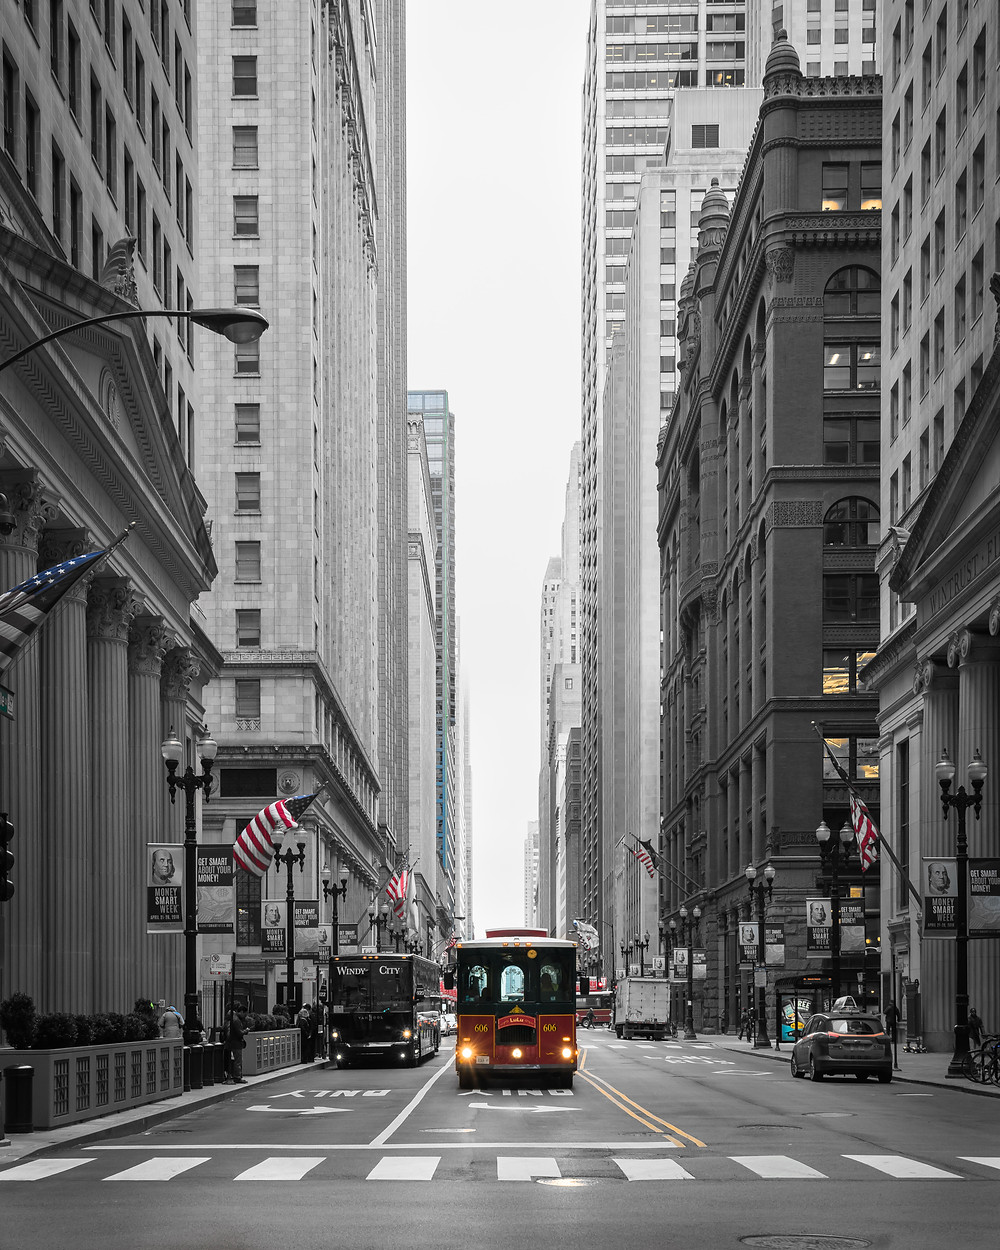 Trolly on LaSalle Street in chicago